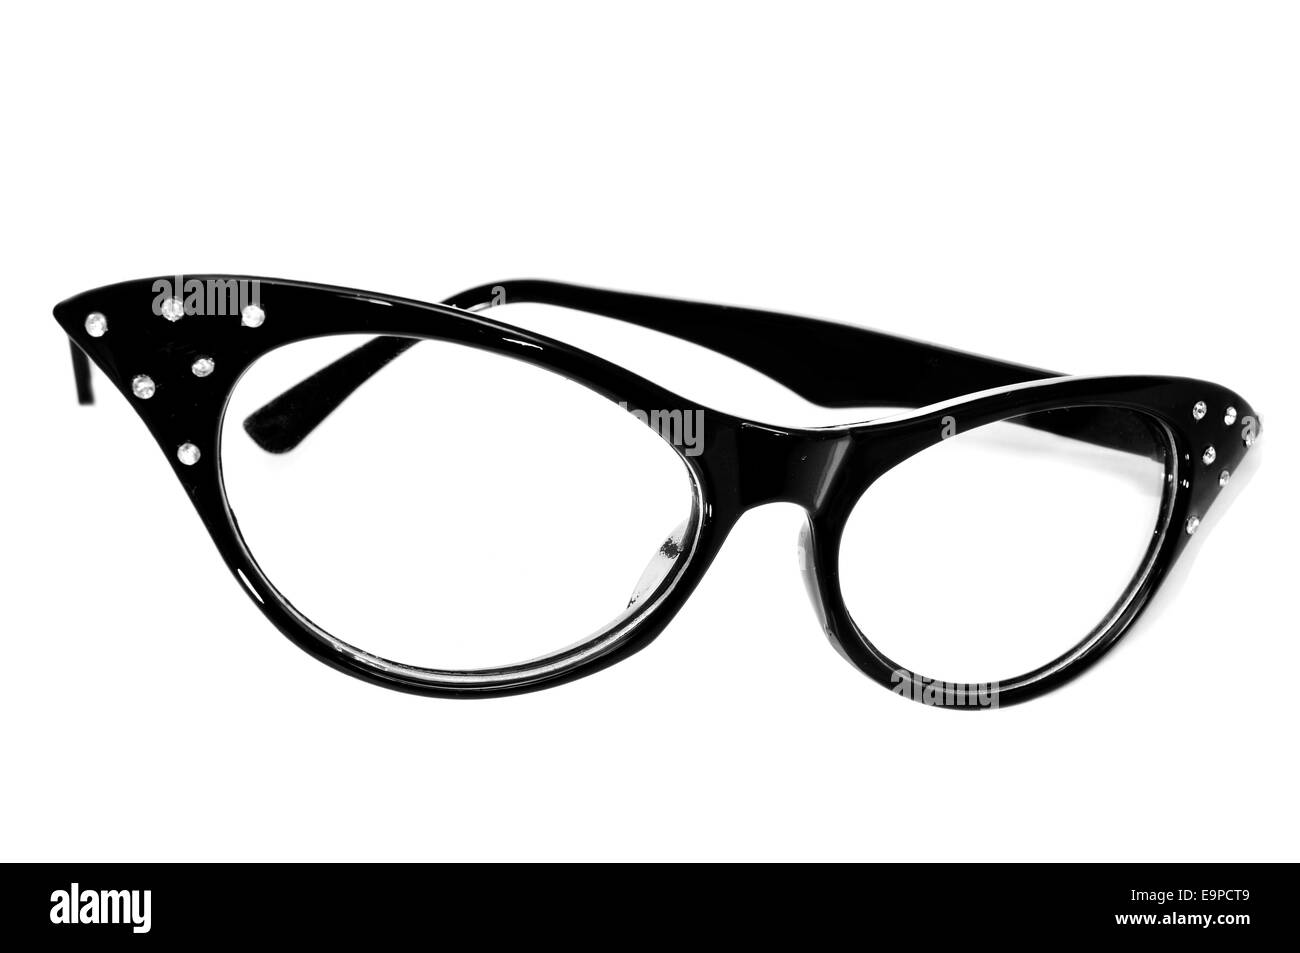 closeup of a black retro-styled eyeglasses for women on a white background - Stock Image